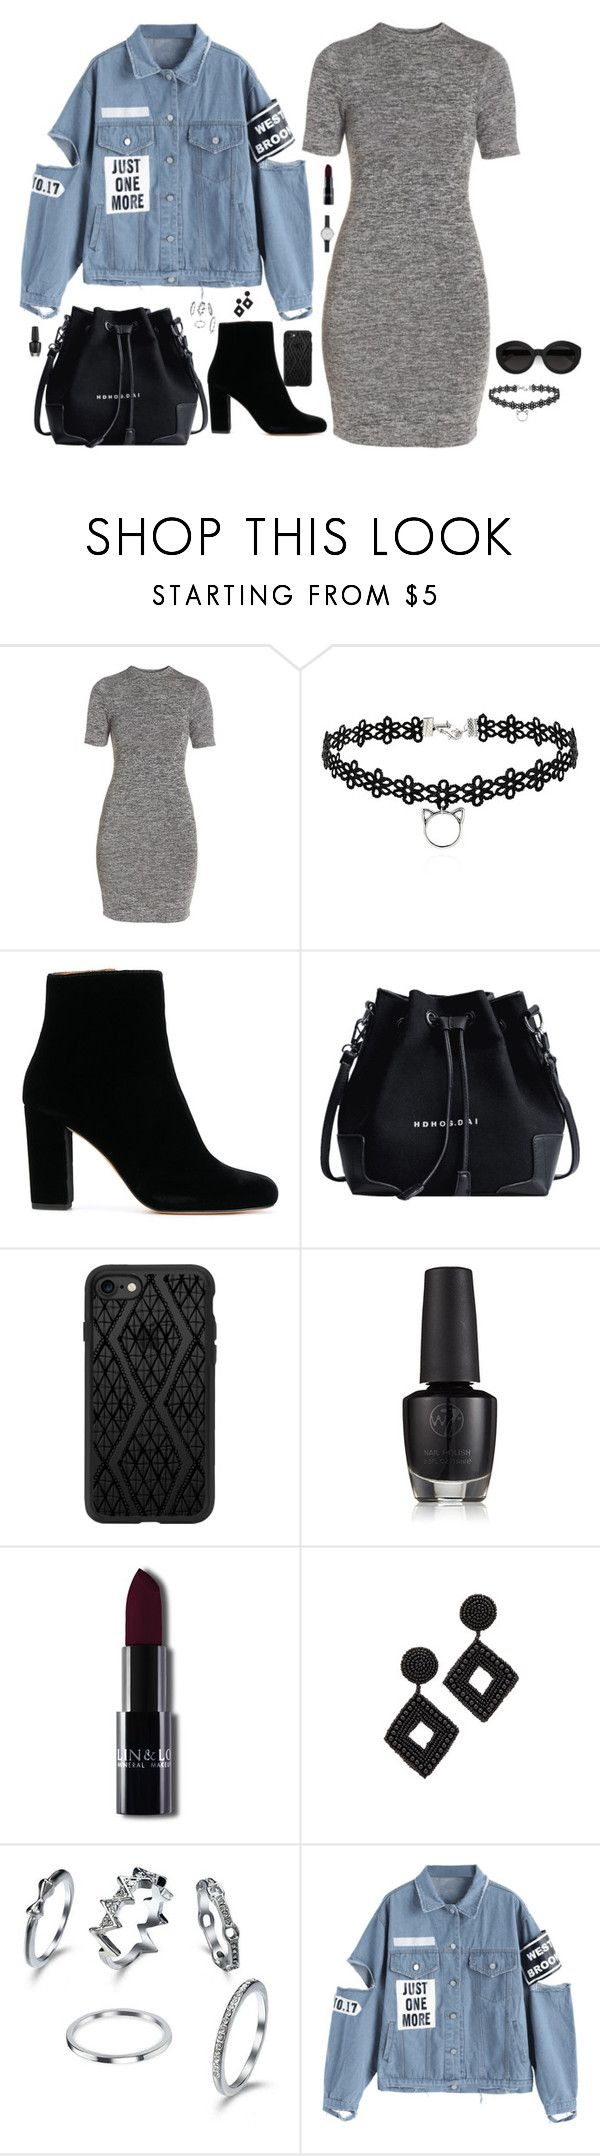 """Untitled #1384"" by nine-nine ❤ liked on Polyvore featuring French Connection, Carla Zampatti, Casetify, Kenneth Jay Lane and Skagen"